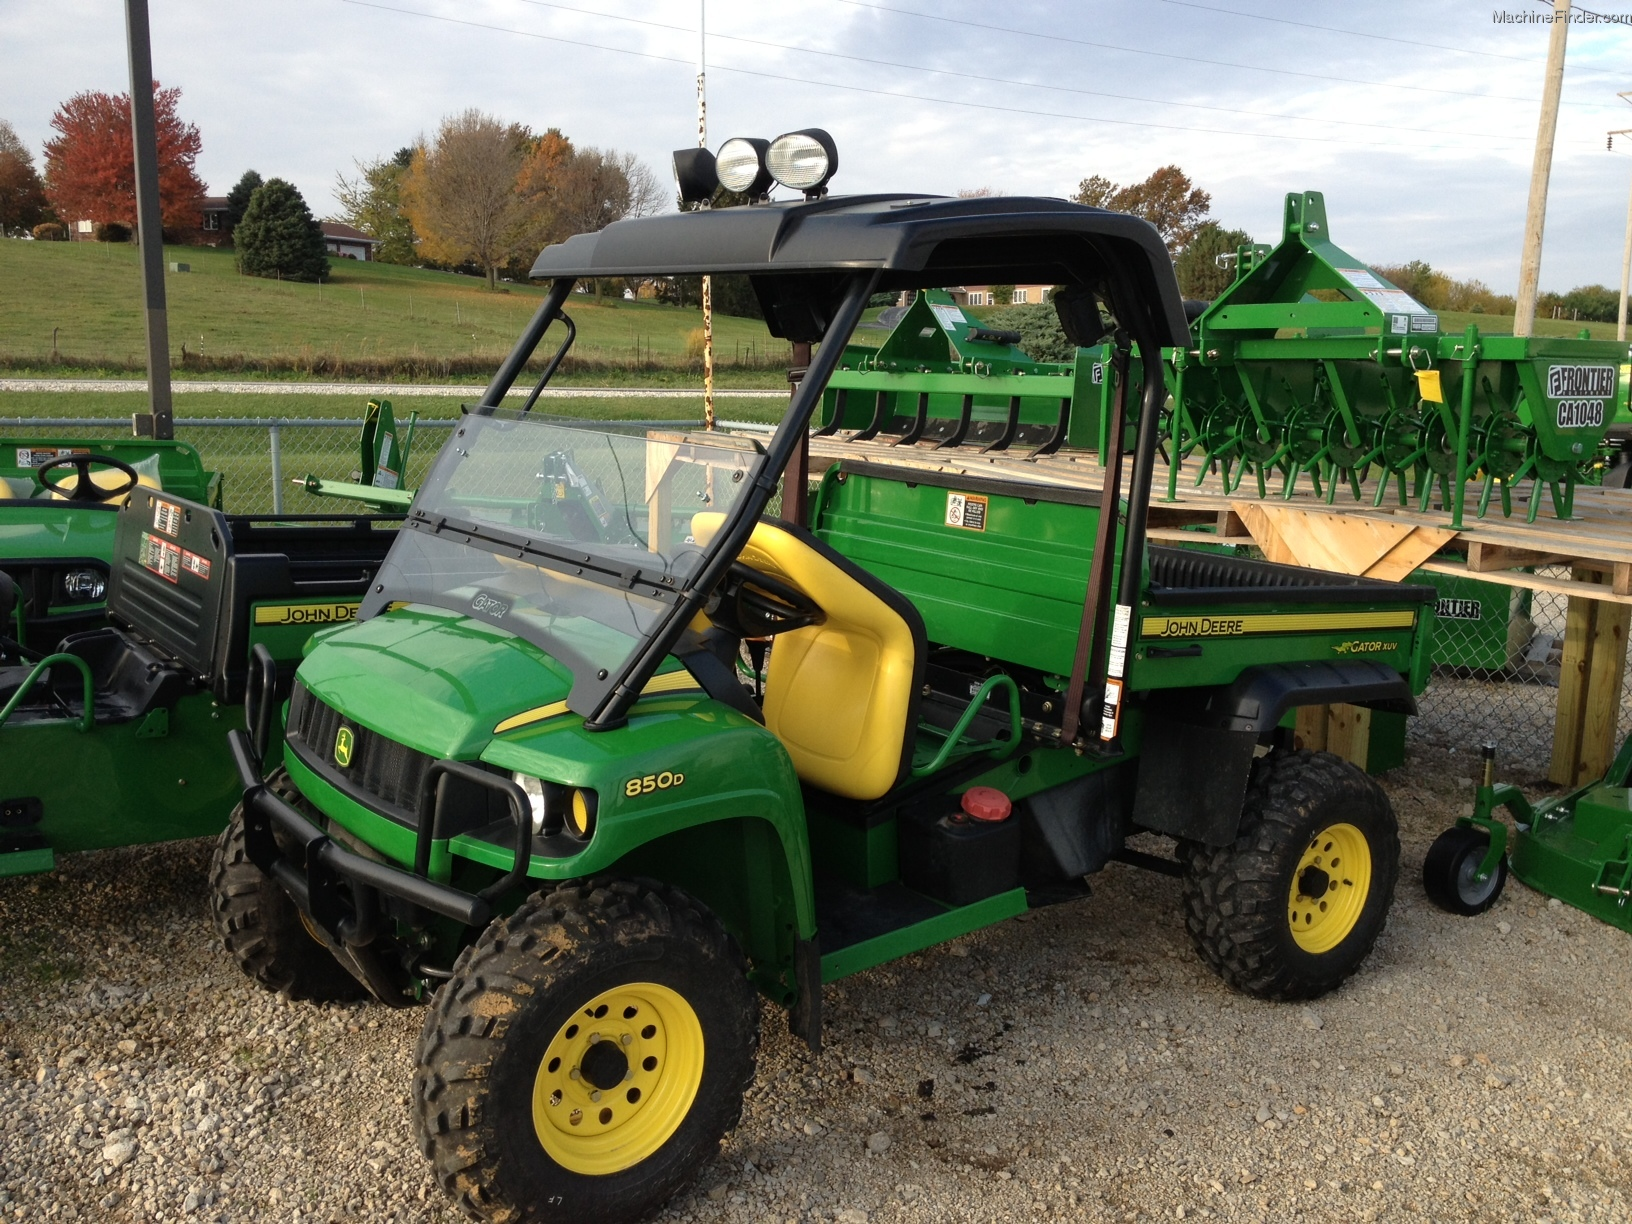 John Deere 944 http://www.machinefinder.com/ww/en-US/machine/2285736